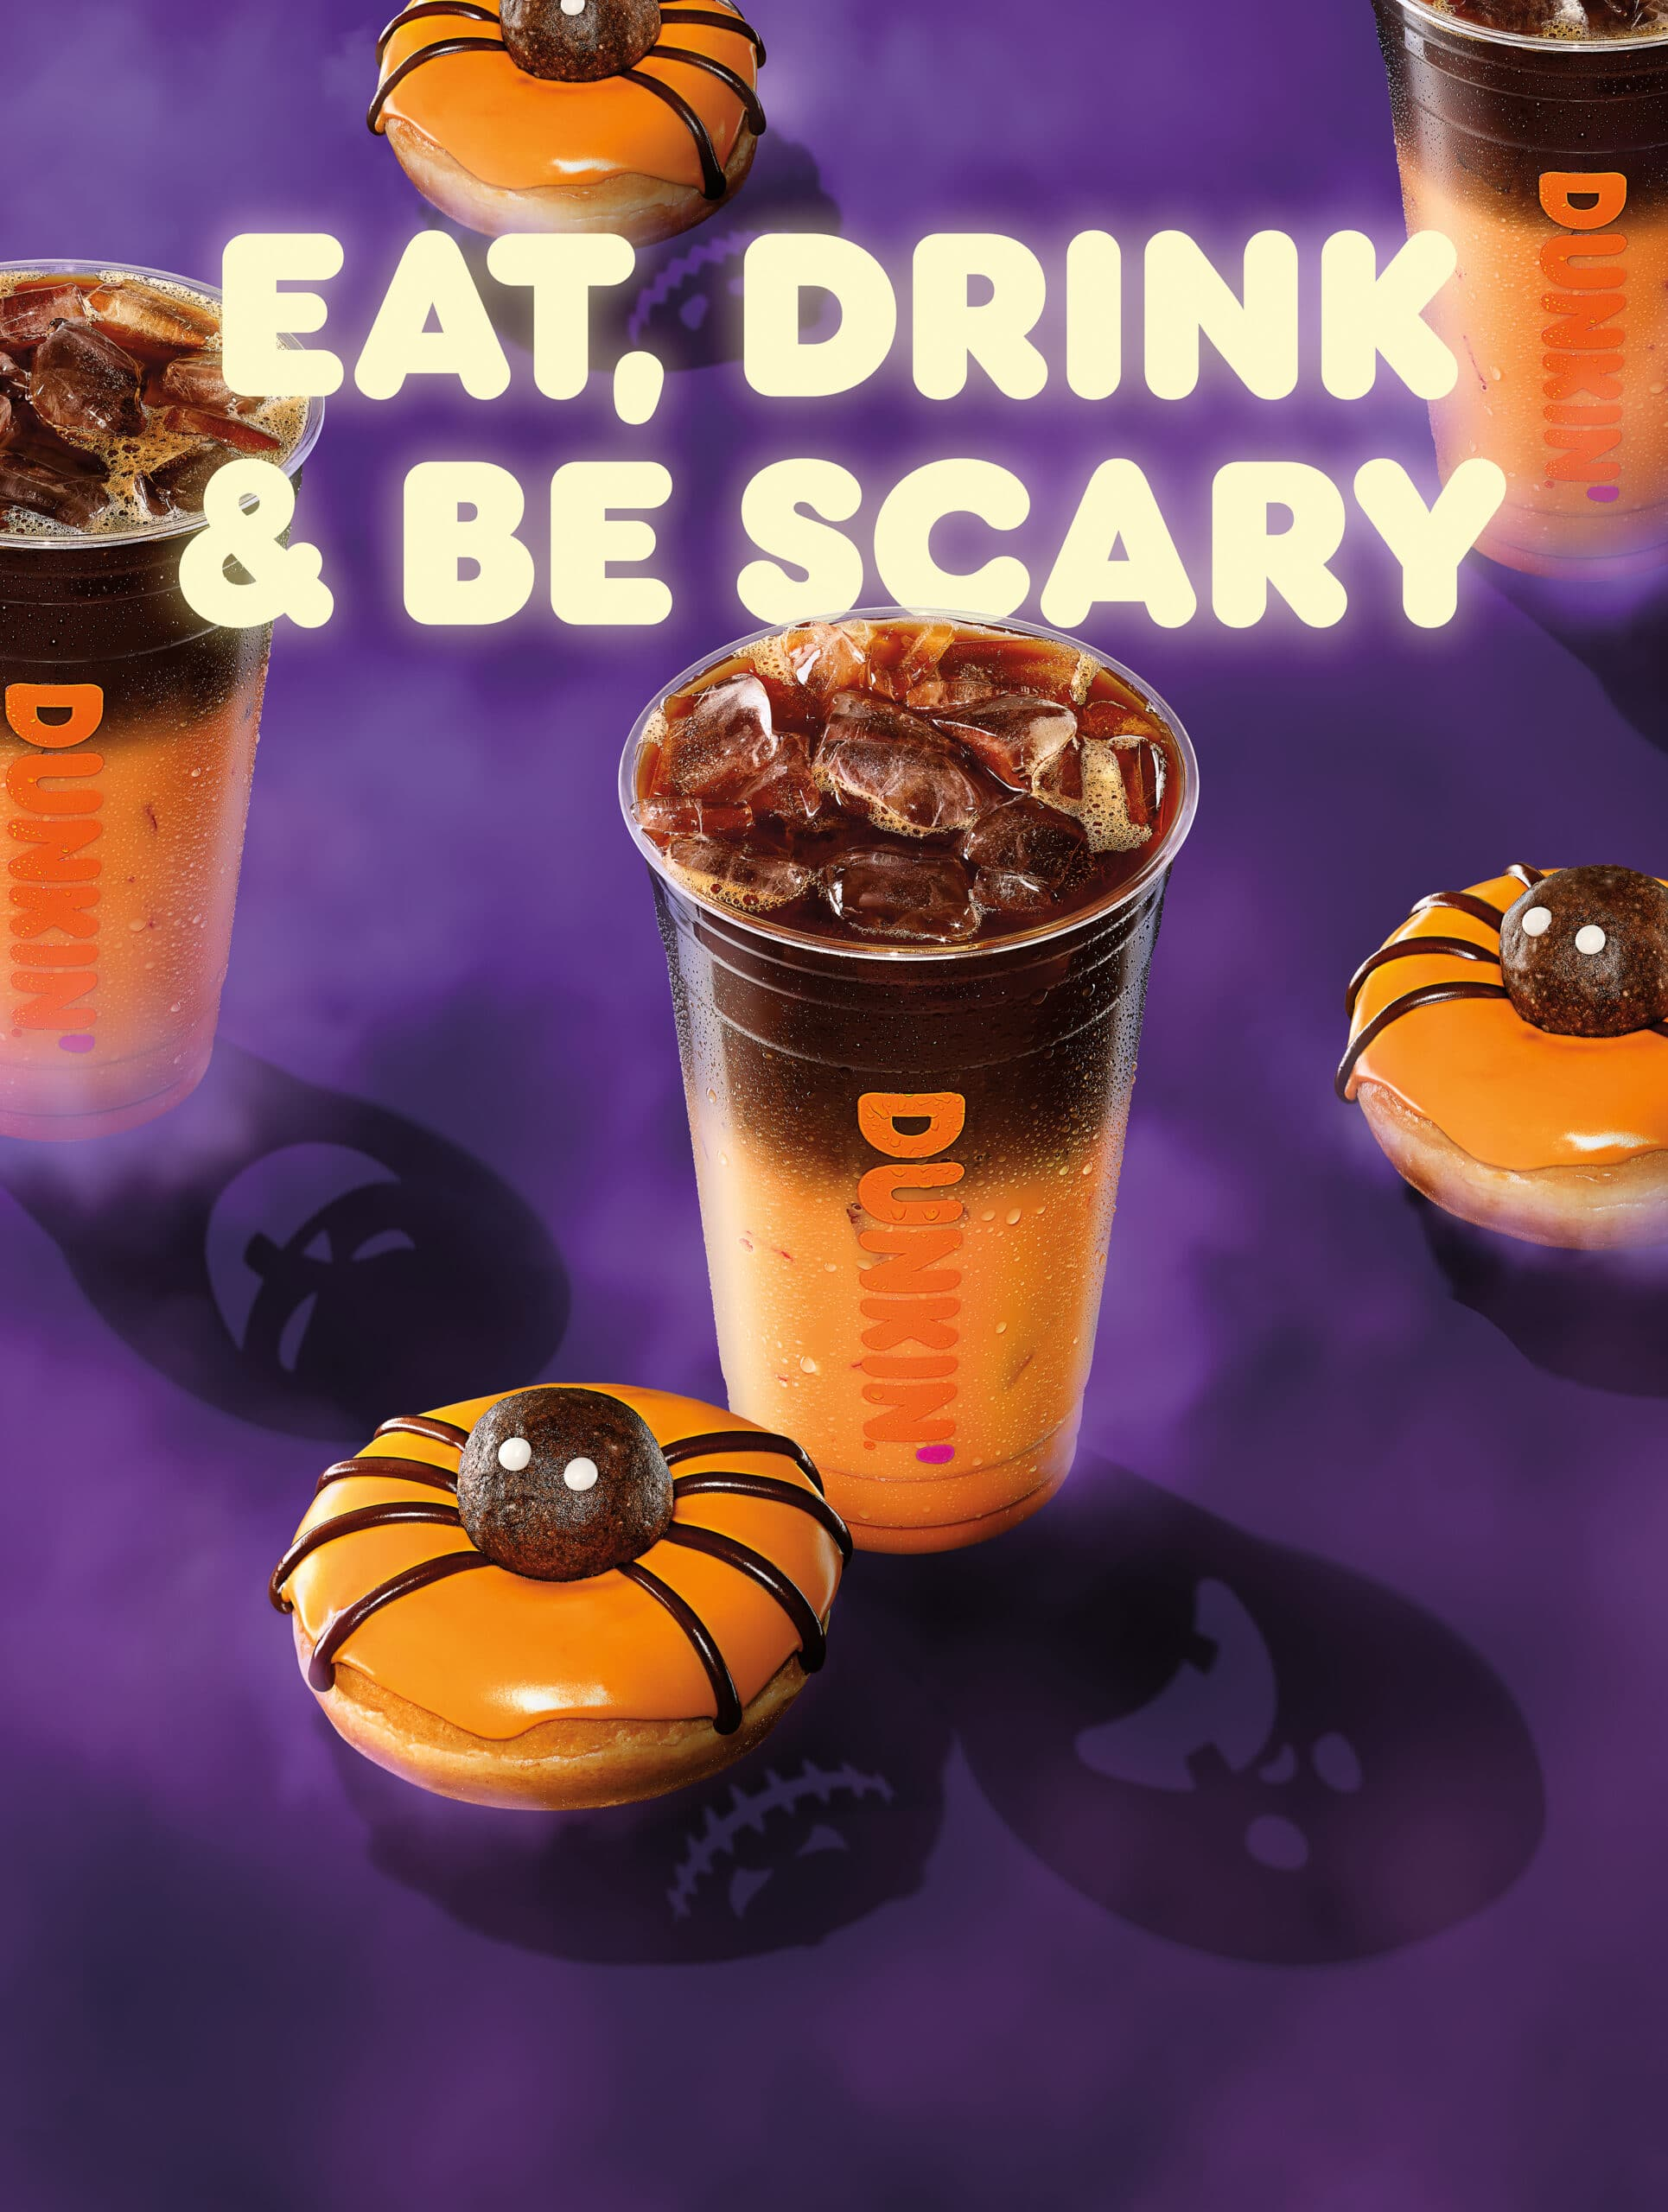 Dunkin' adds Peanut Butter Cup Macchiato to its Halloween lineup 15